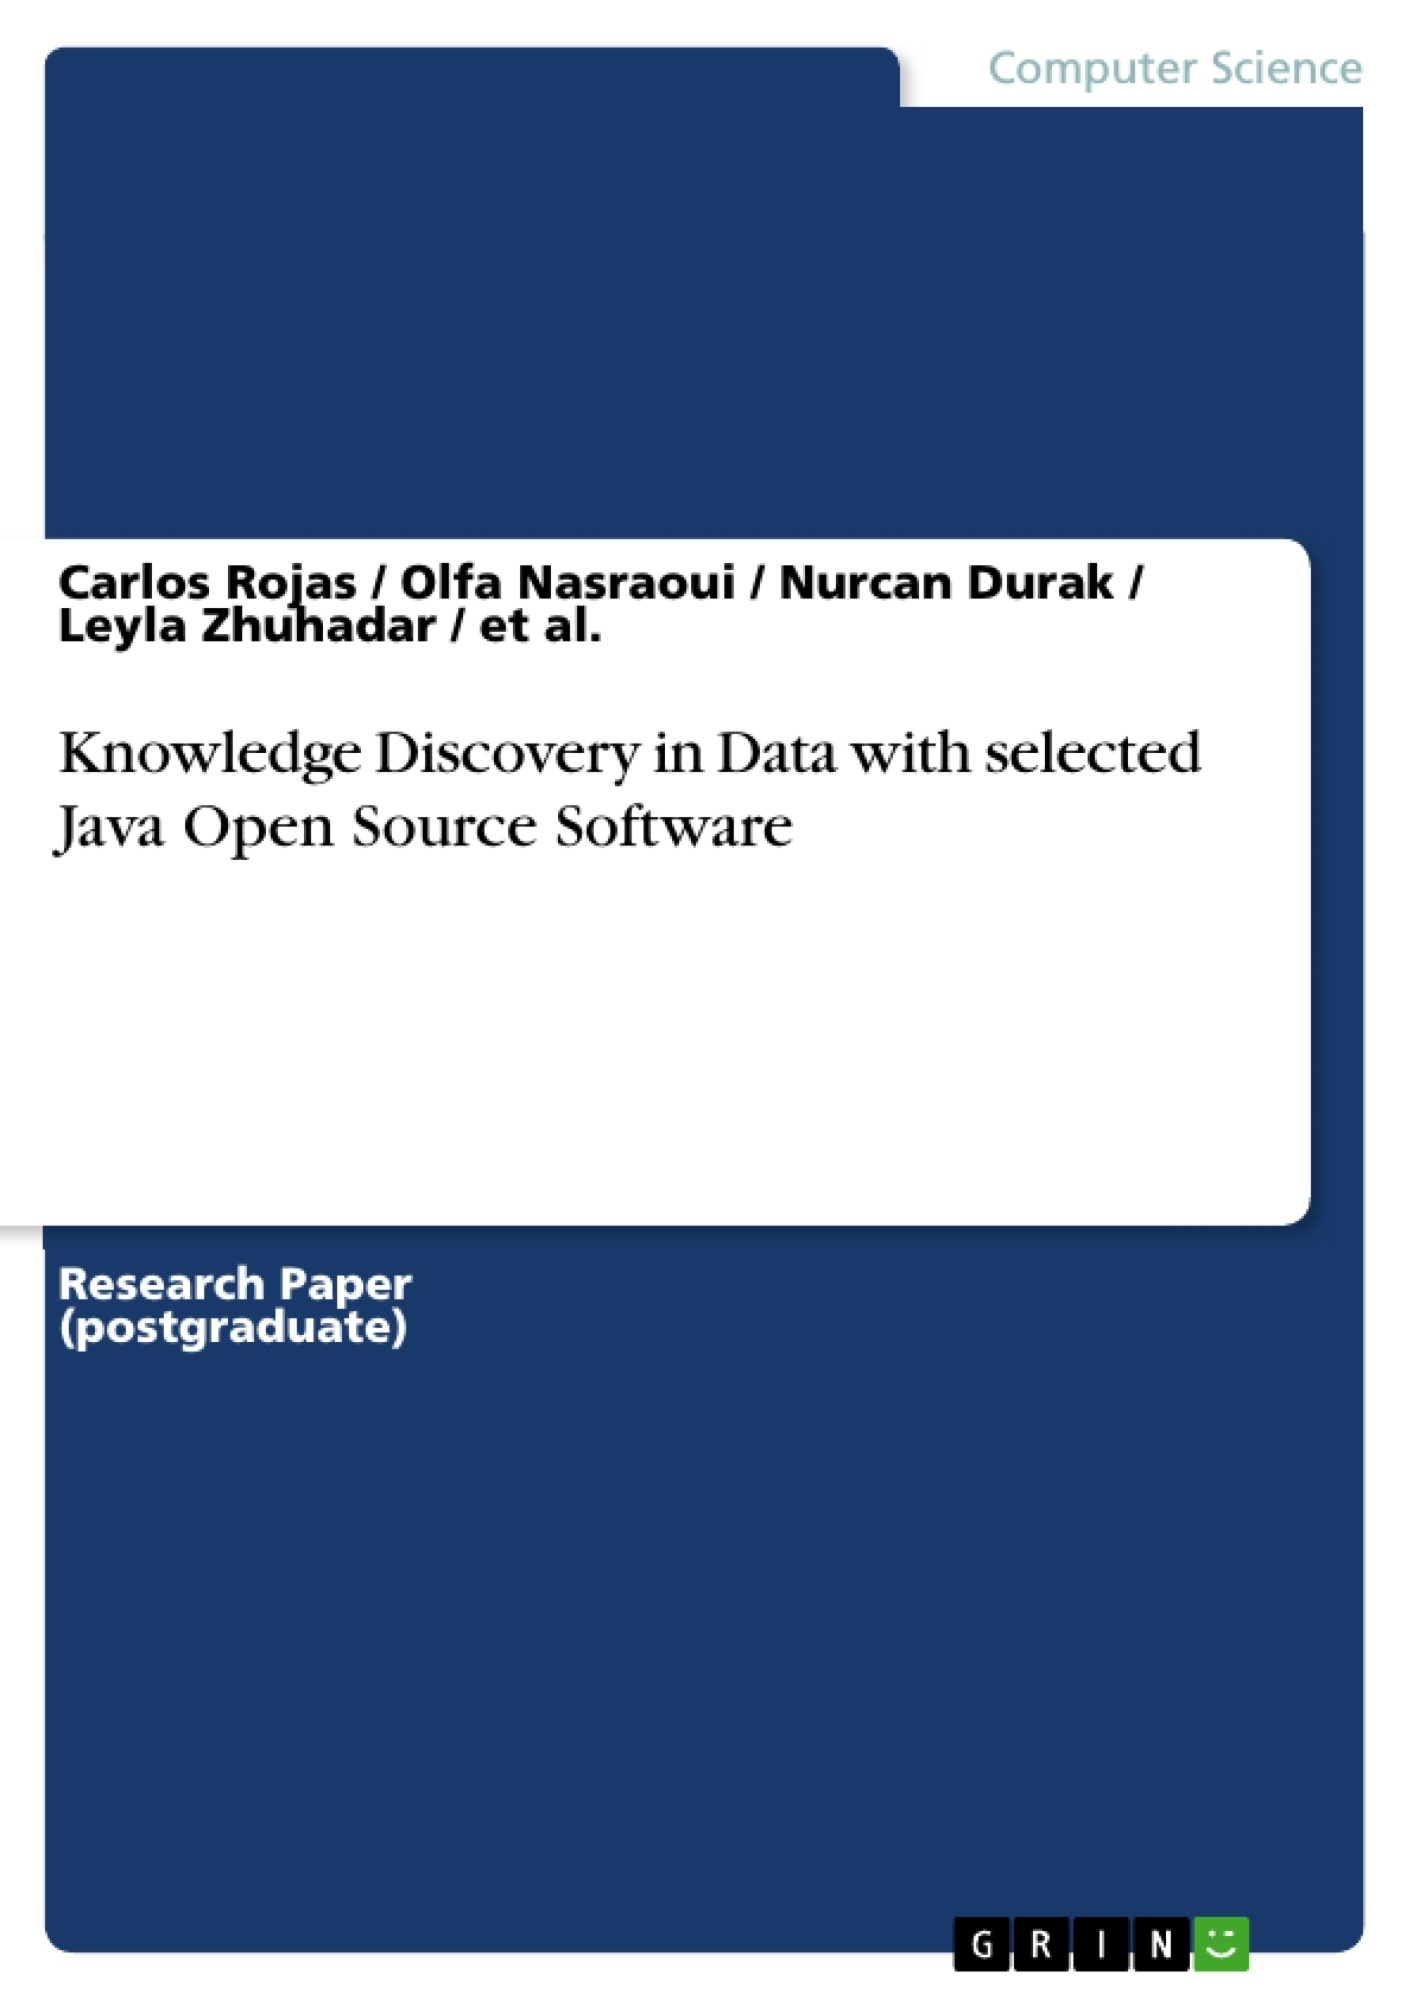 Title: Knowledge Discovery in Data with selected Java Open Source Software